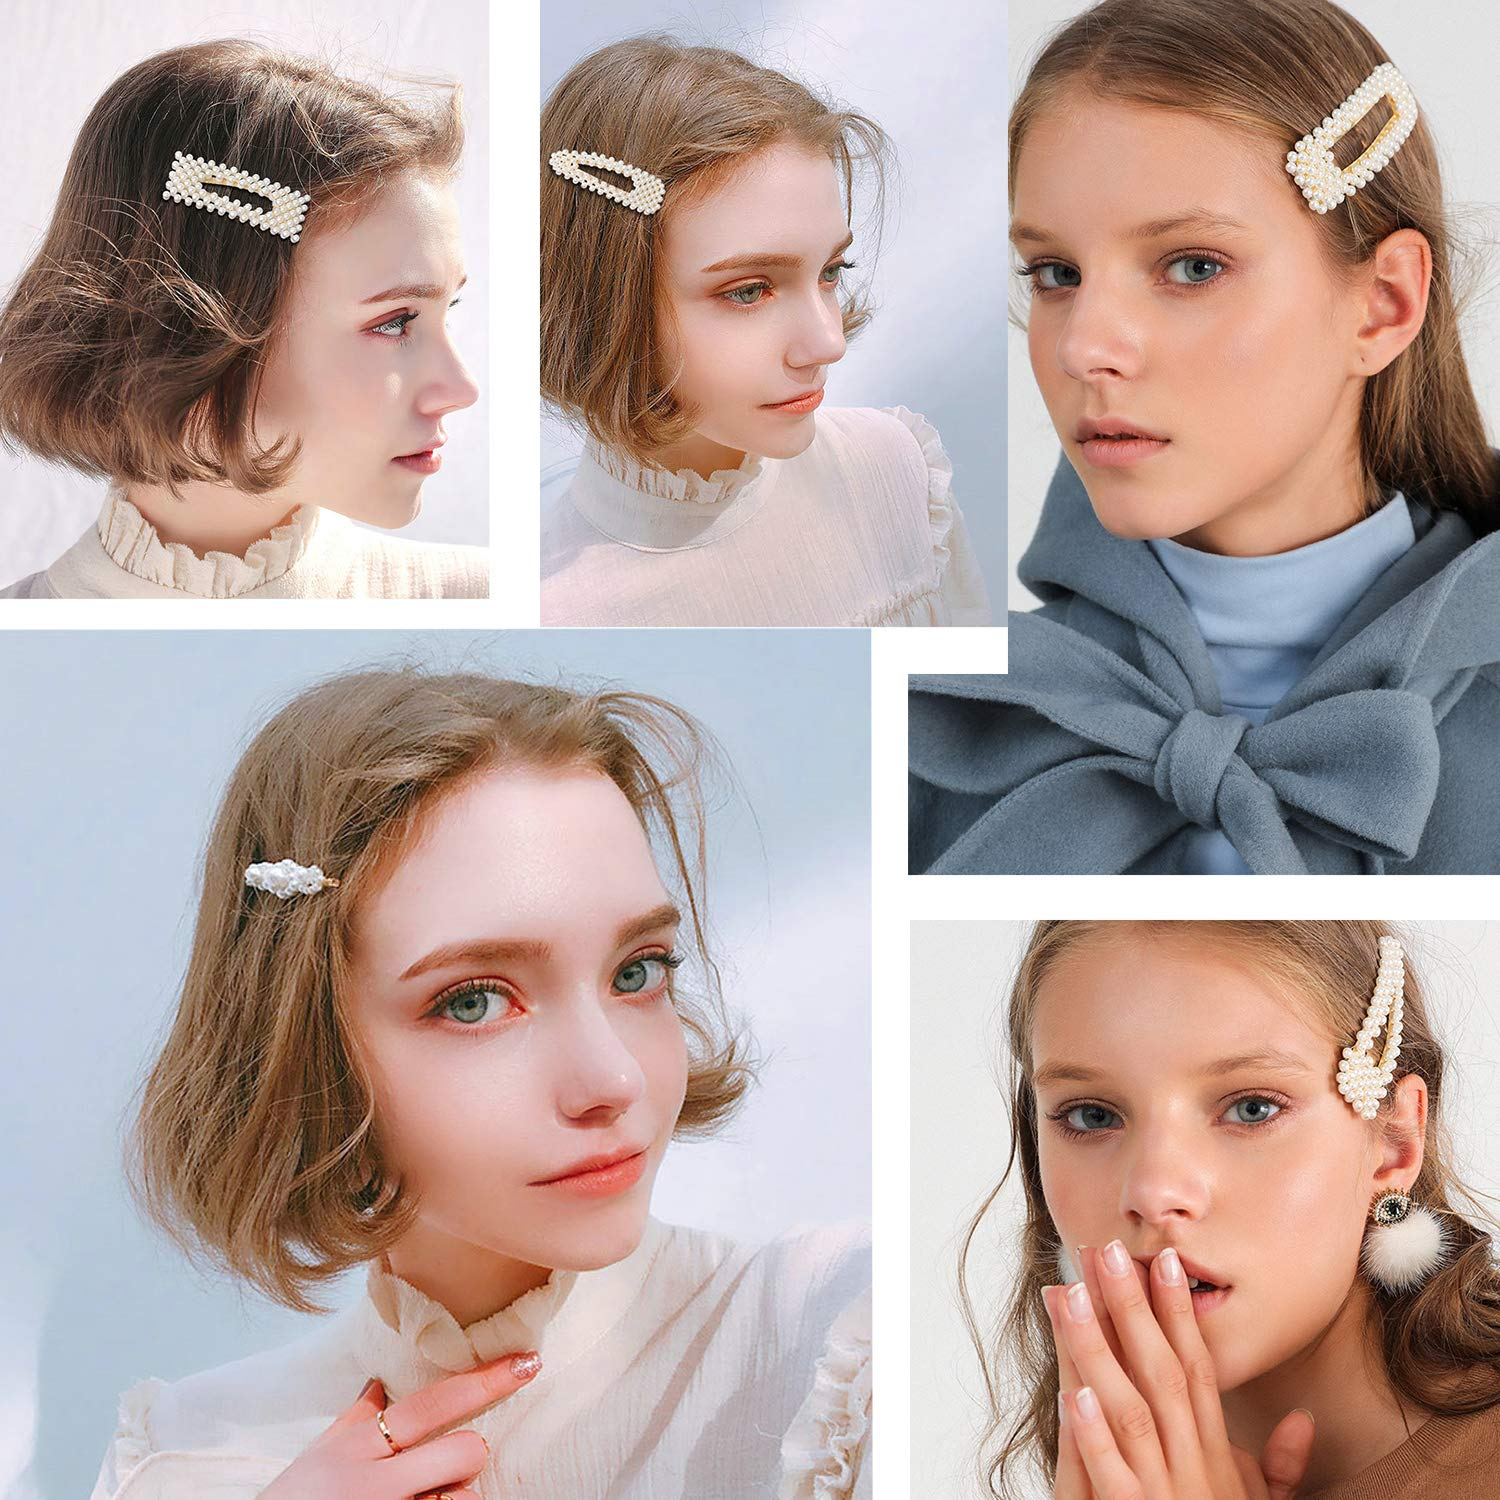 Pearls Hair Clips for Women Girls Teens Blonde - 9 Pcs Large Thick Thin Hair Barrette Accessories Set Bows Claw Pins Headpiece Hairpins Headwear for Wedding Bridal Bridesmaid Prom Gift - Gold & Silver